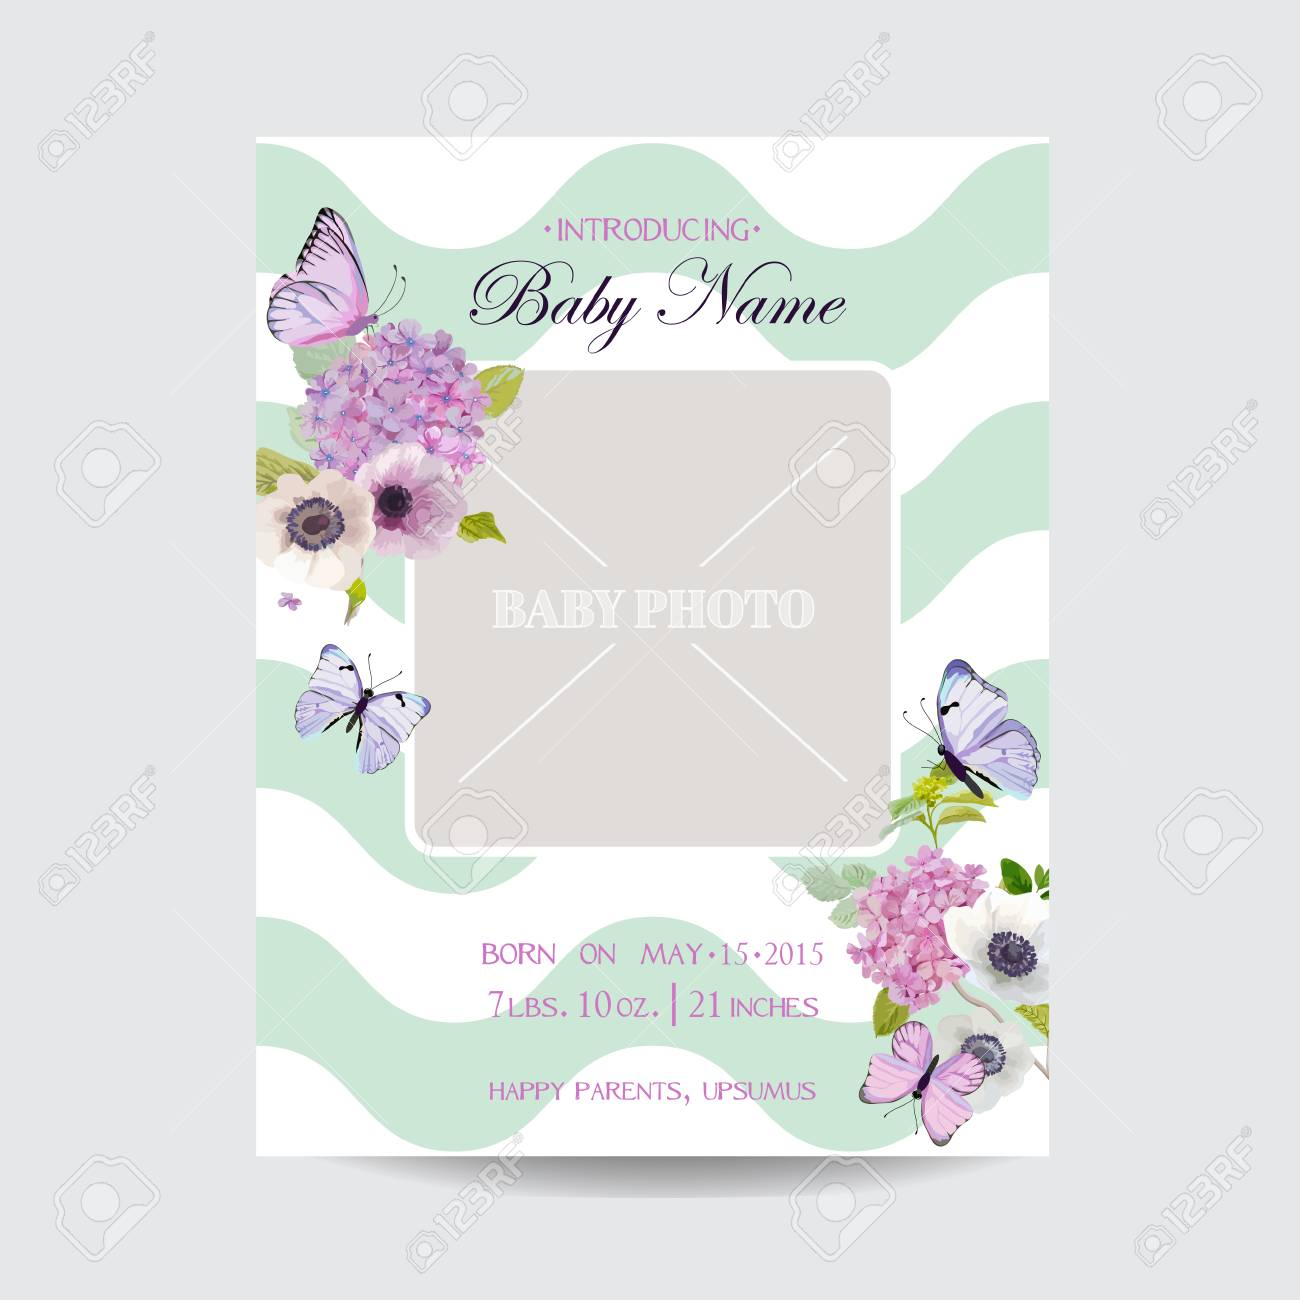 Baby shower invitation template with photo frame flowers and baby shower invitation template with photo frame flowers and butterflies floral wedding card design stopboris Images